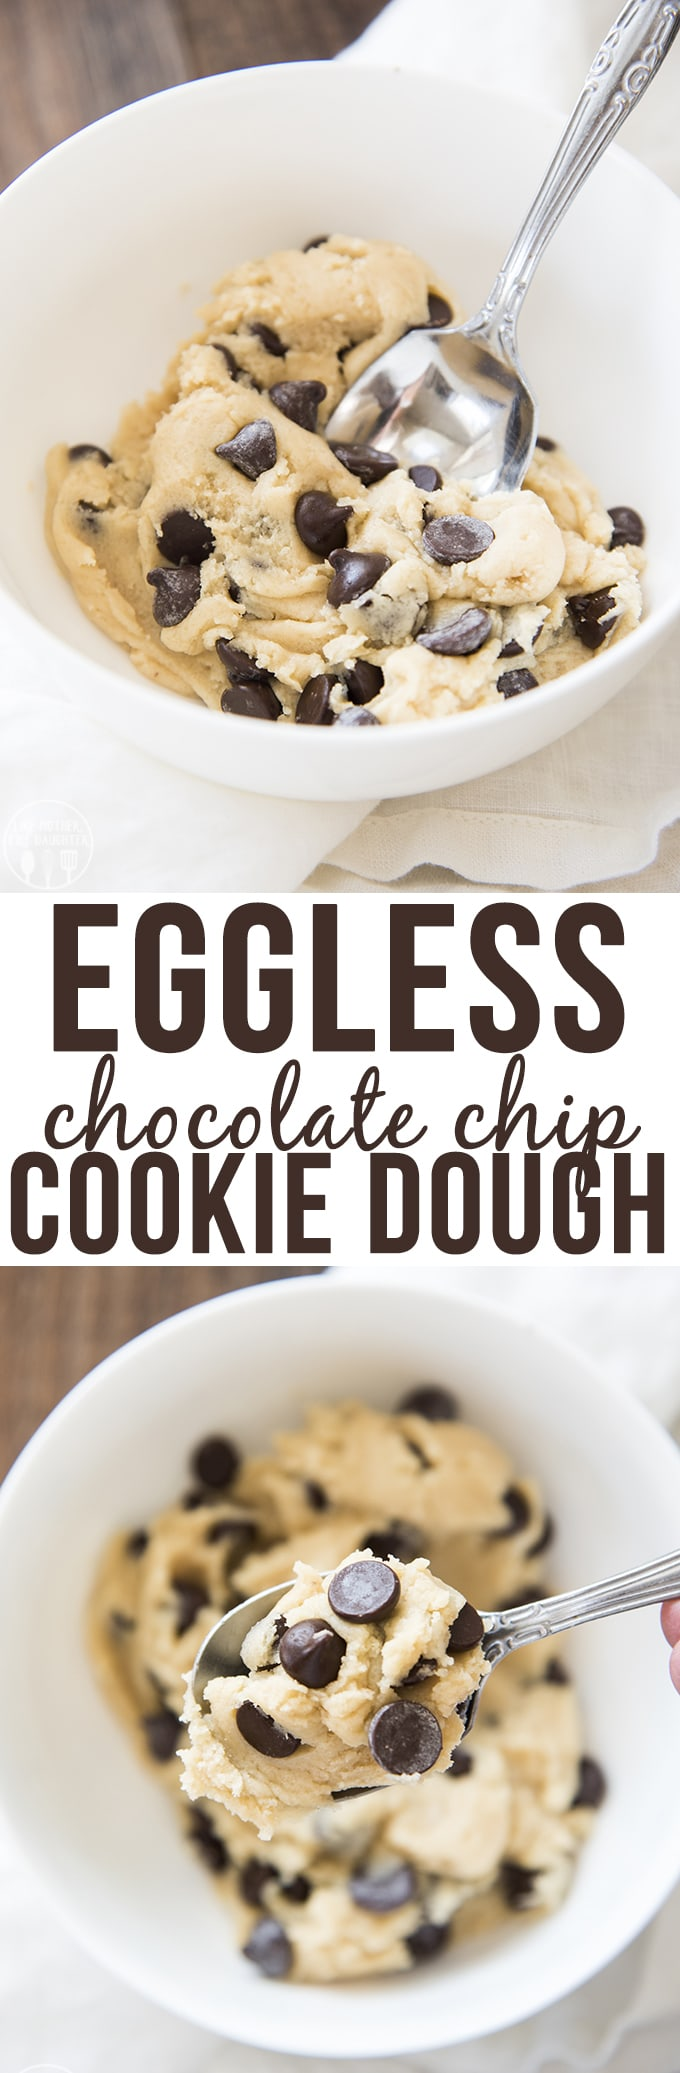 Eggless Cookie Dough for one is an edible chocolate chip cookie dough that you can whip up in minutes for a perfectly safe cookie dough treat!